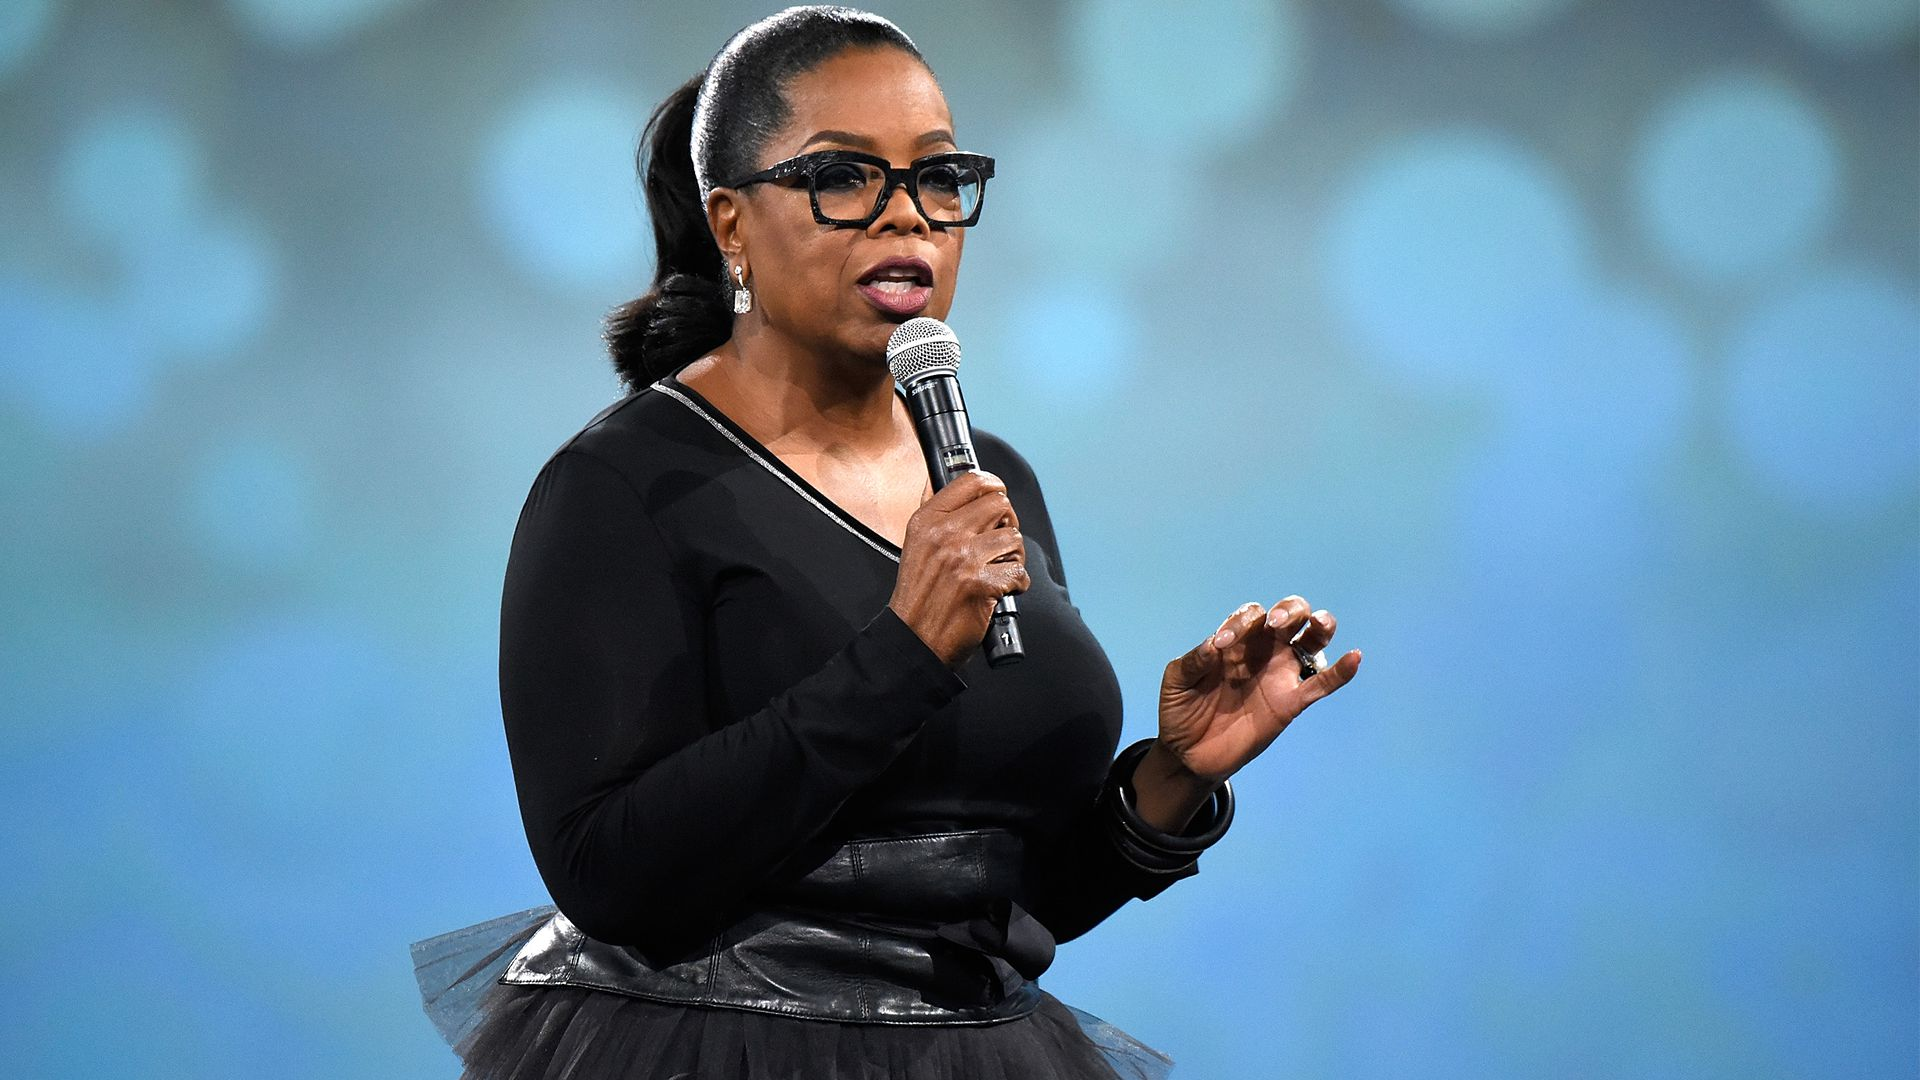 Oprah Winfrey. Wearing black outfit holding microphone.